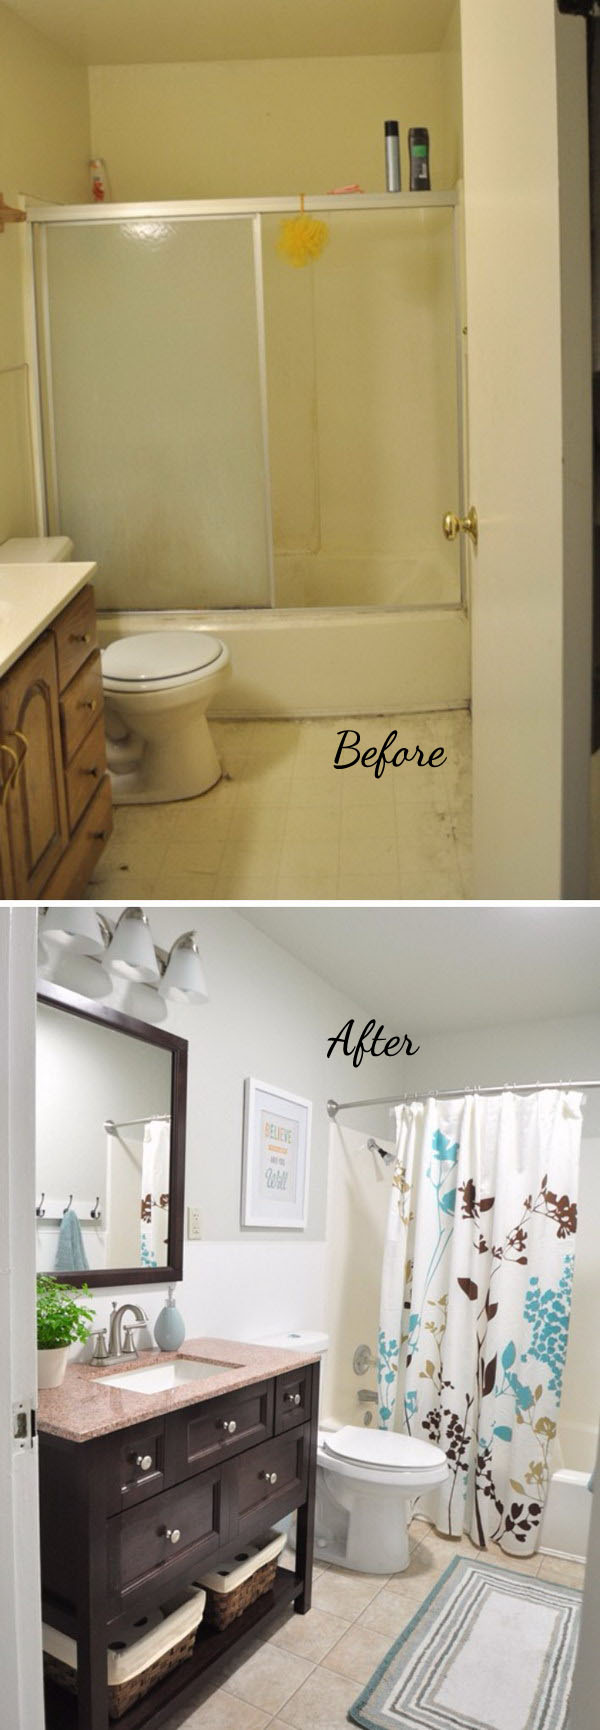 33 Inspirational Small Bathroom Remodel Before and After ... on Small Bathroom Renovation  id=63590